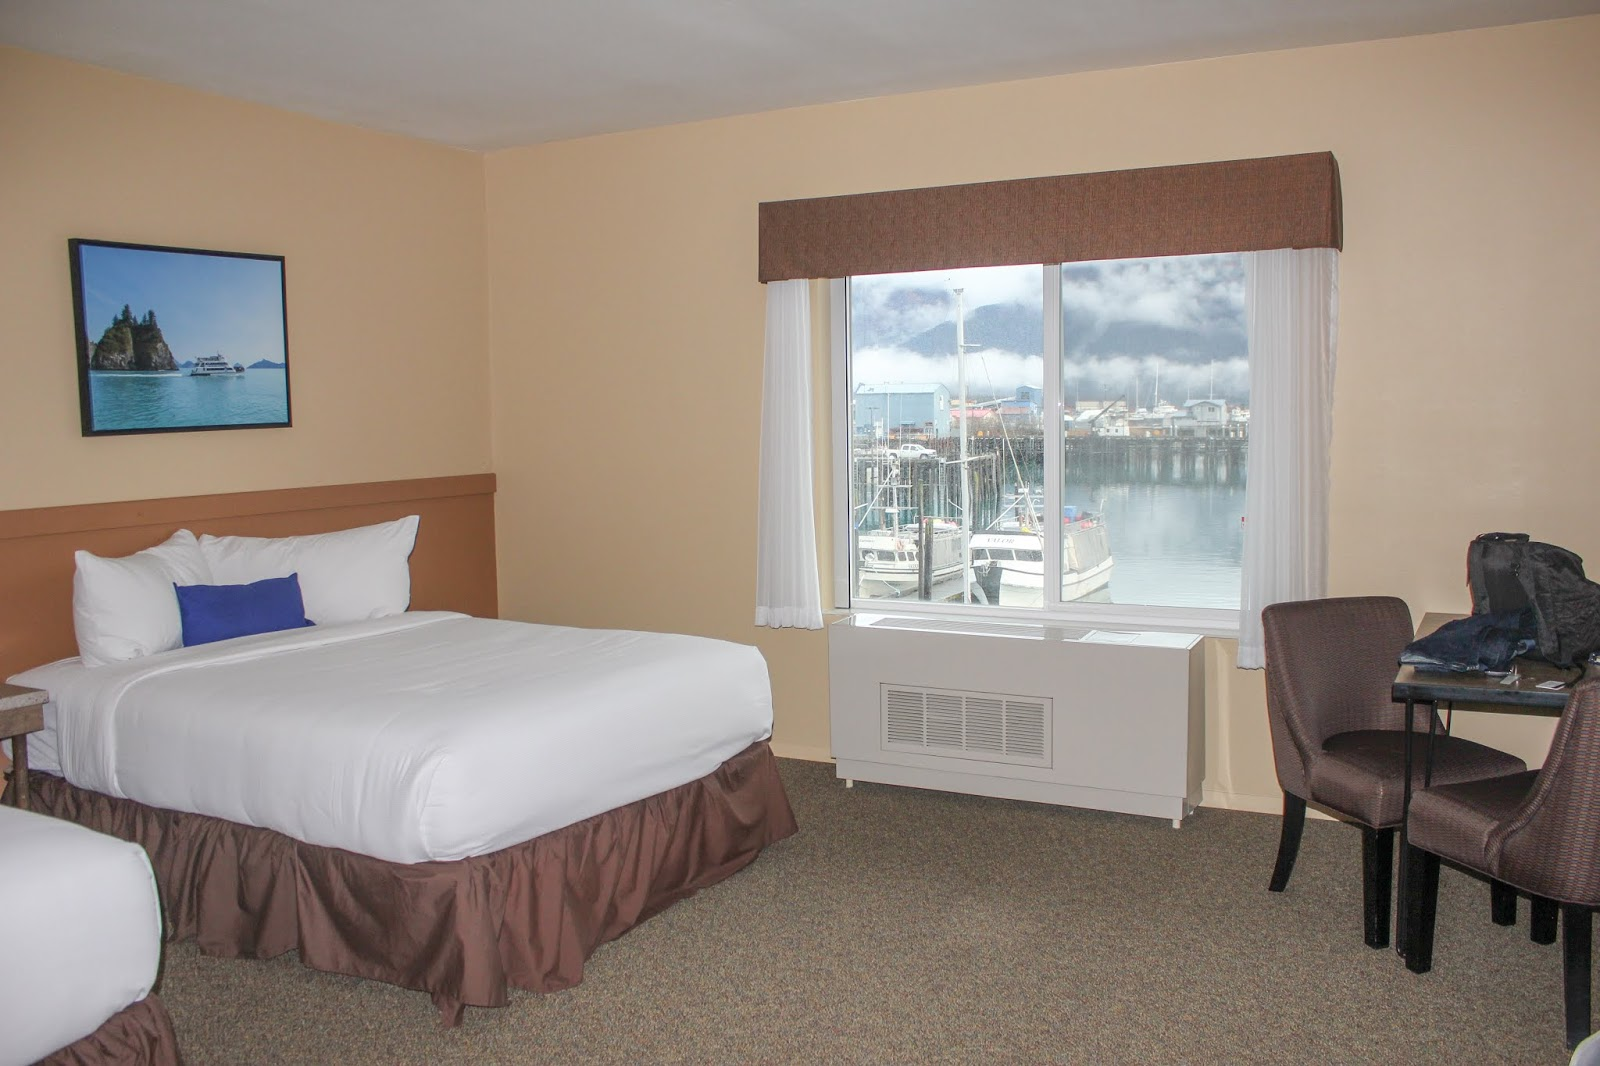 harborview room at Harbor360 Hotel in Seward Alaska